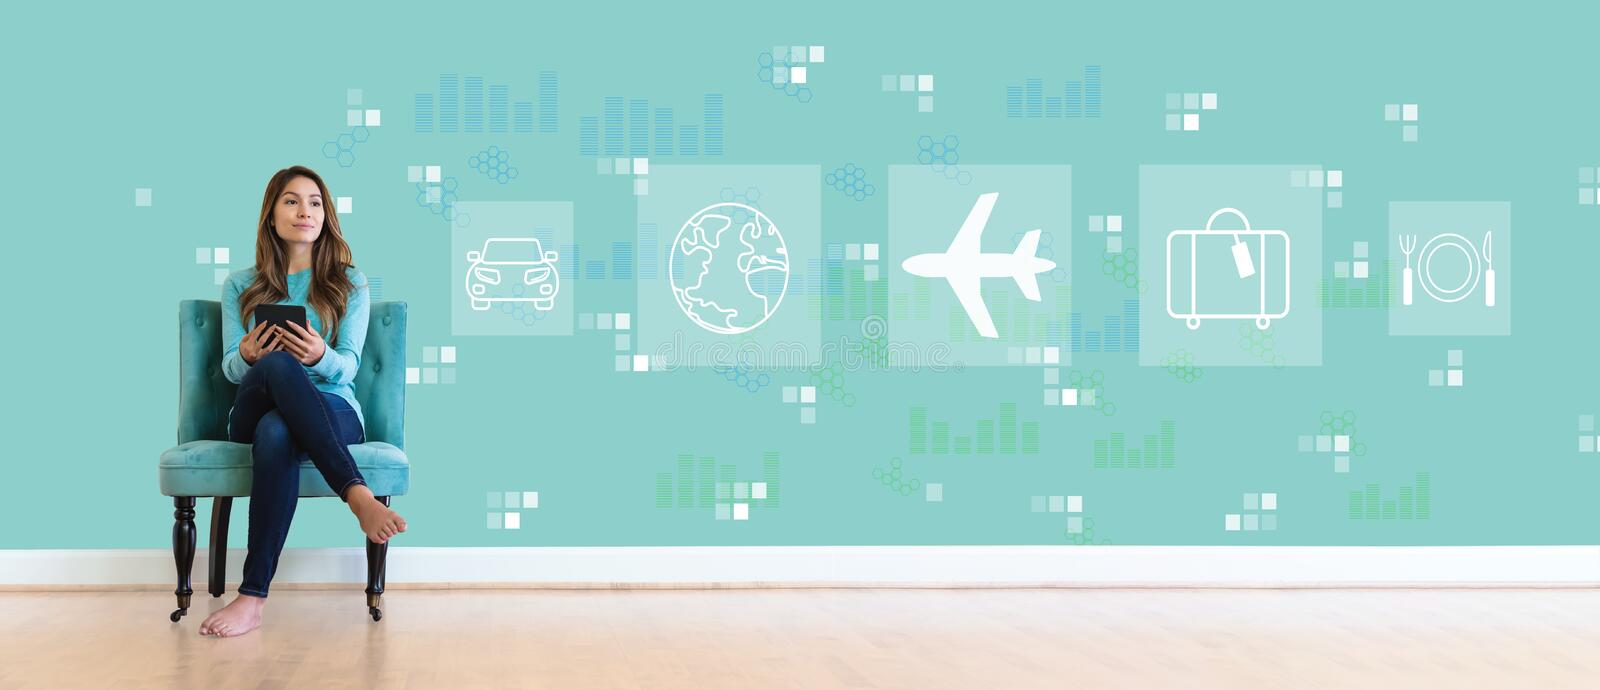 Airplane travel theme with young woman royalty free stock photography